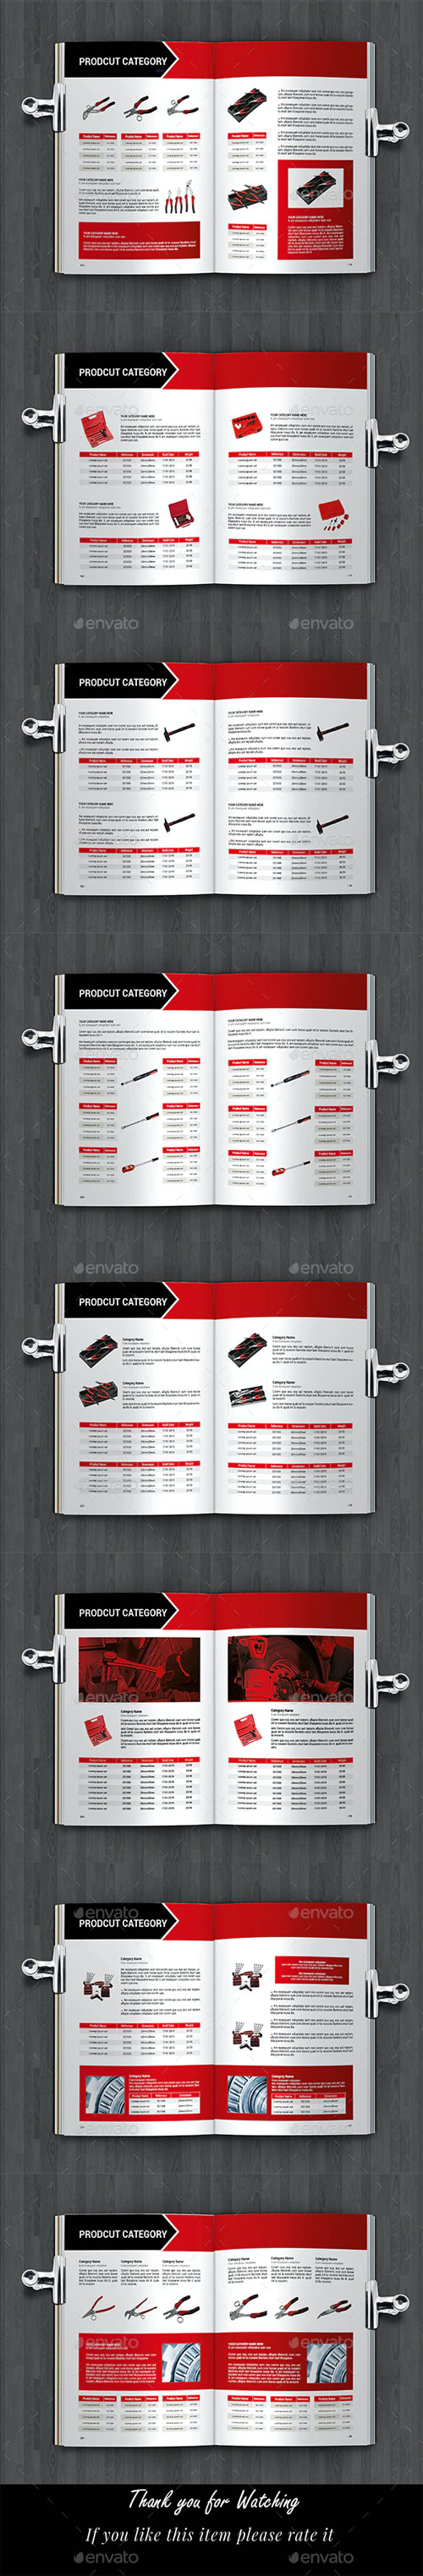 Industrial Products Catalog Template 28142676